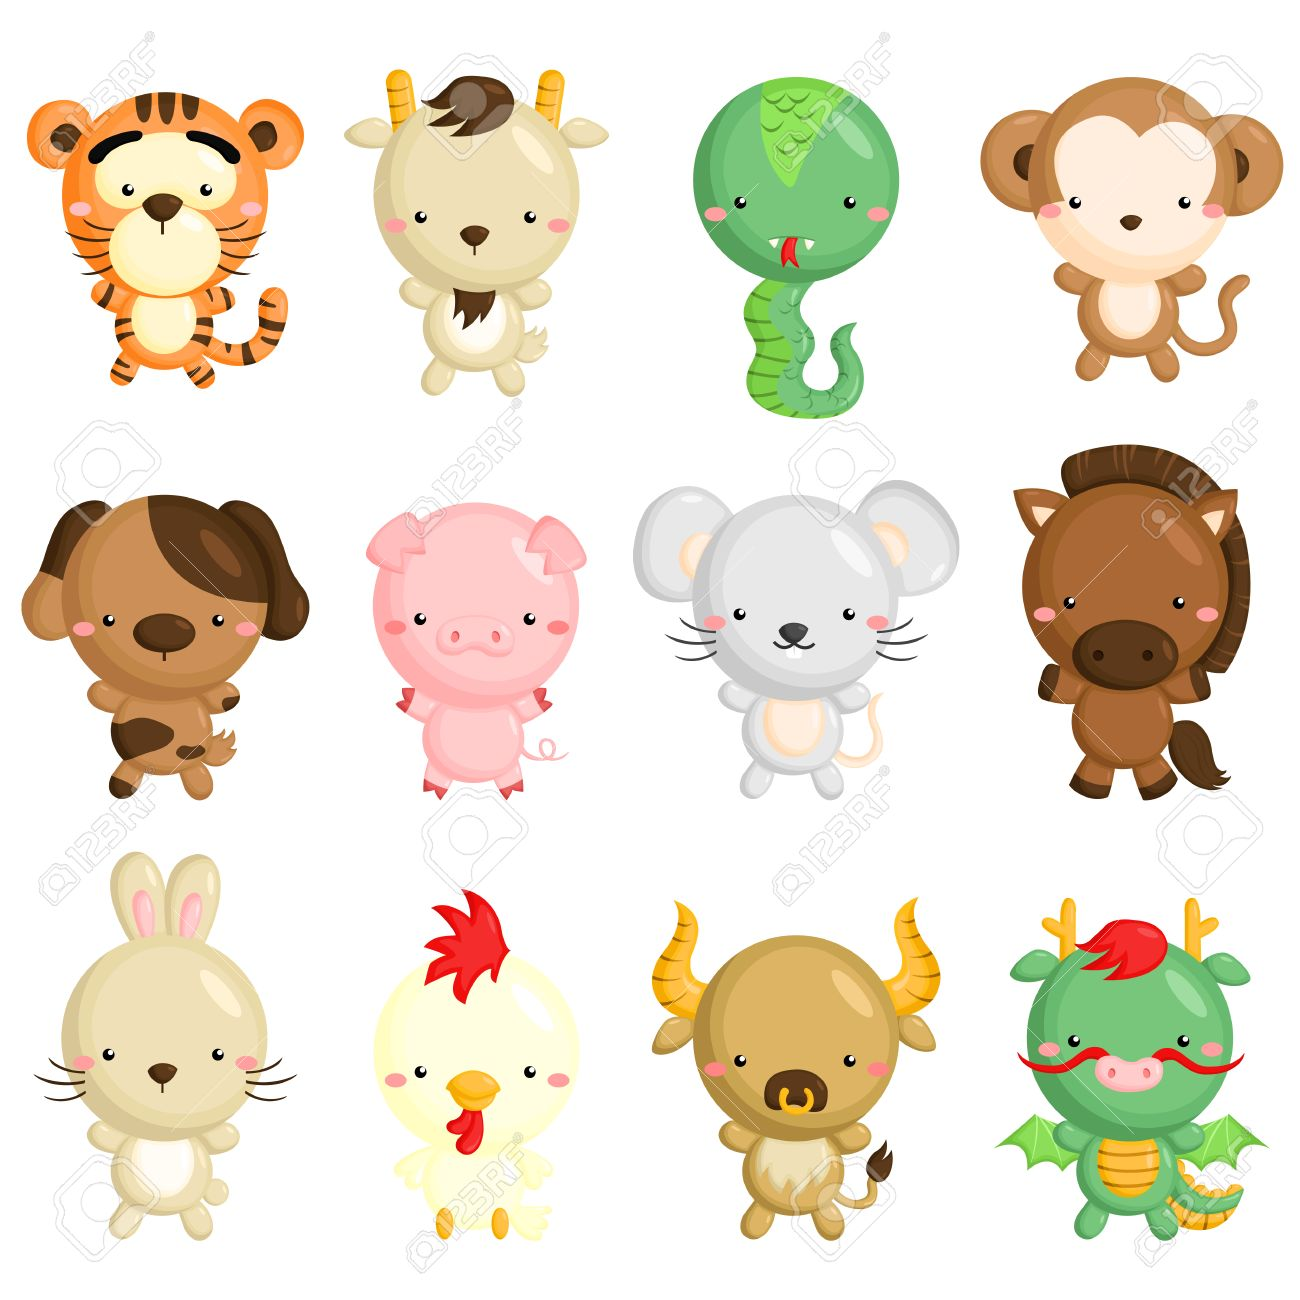 Chinese Zodiac Animals Clipart 20 Free Cliparts